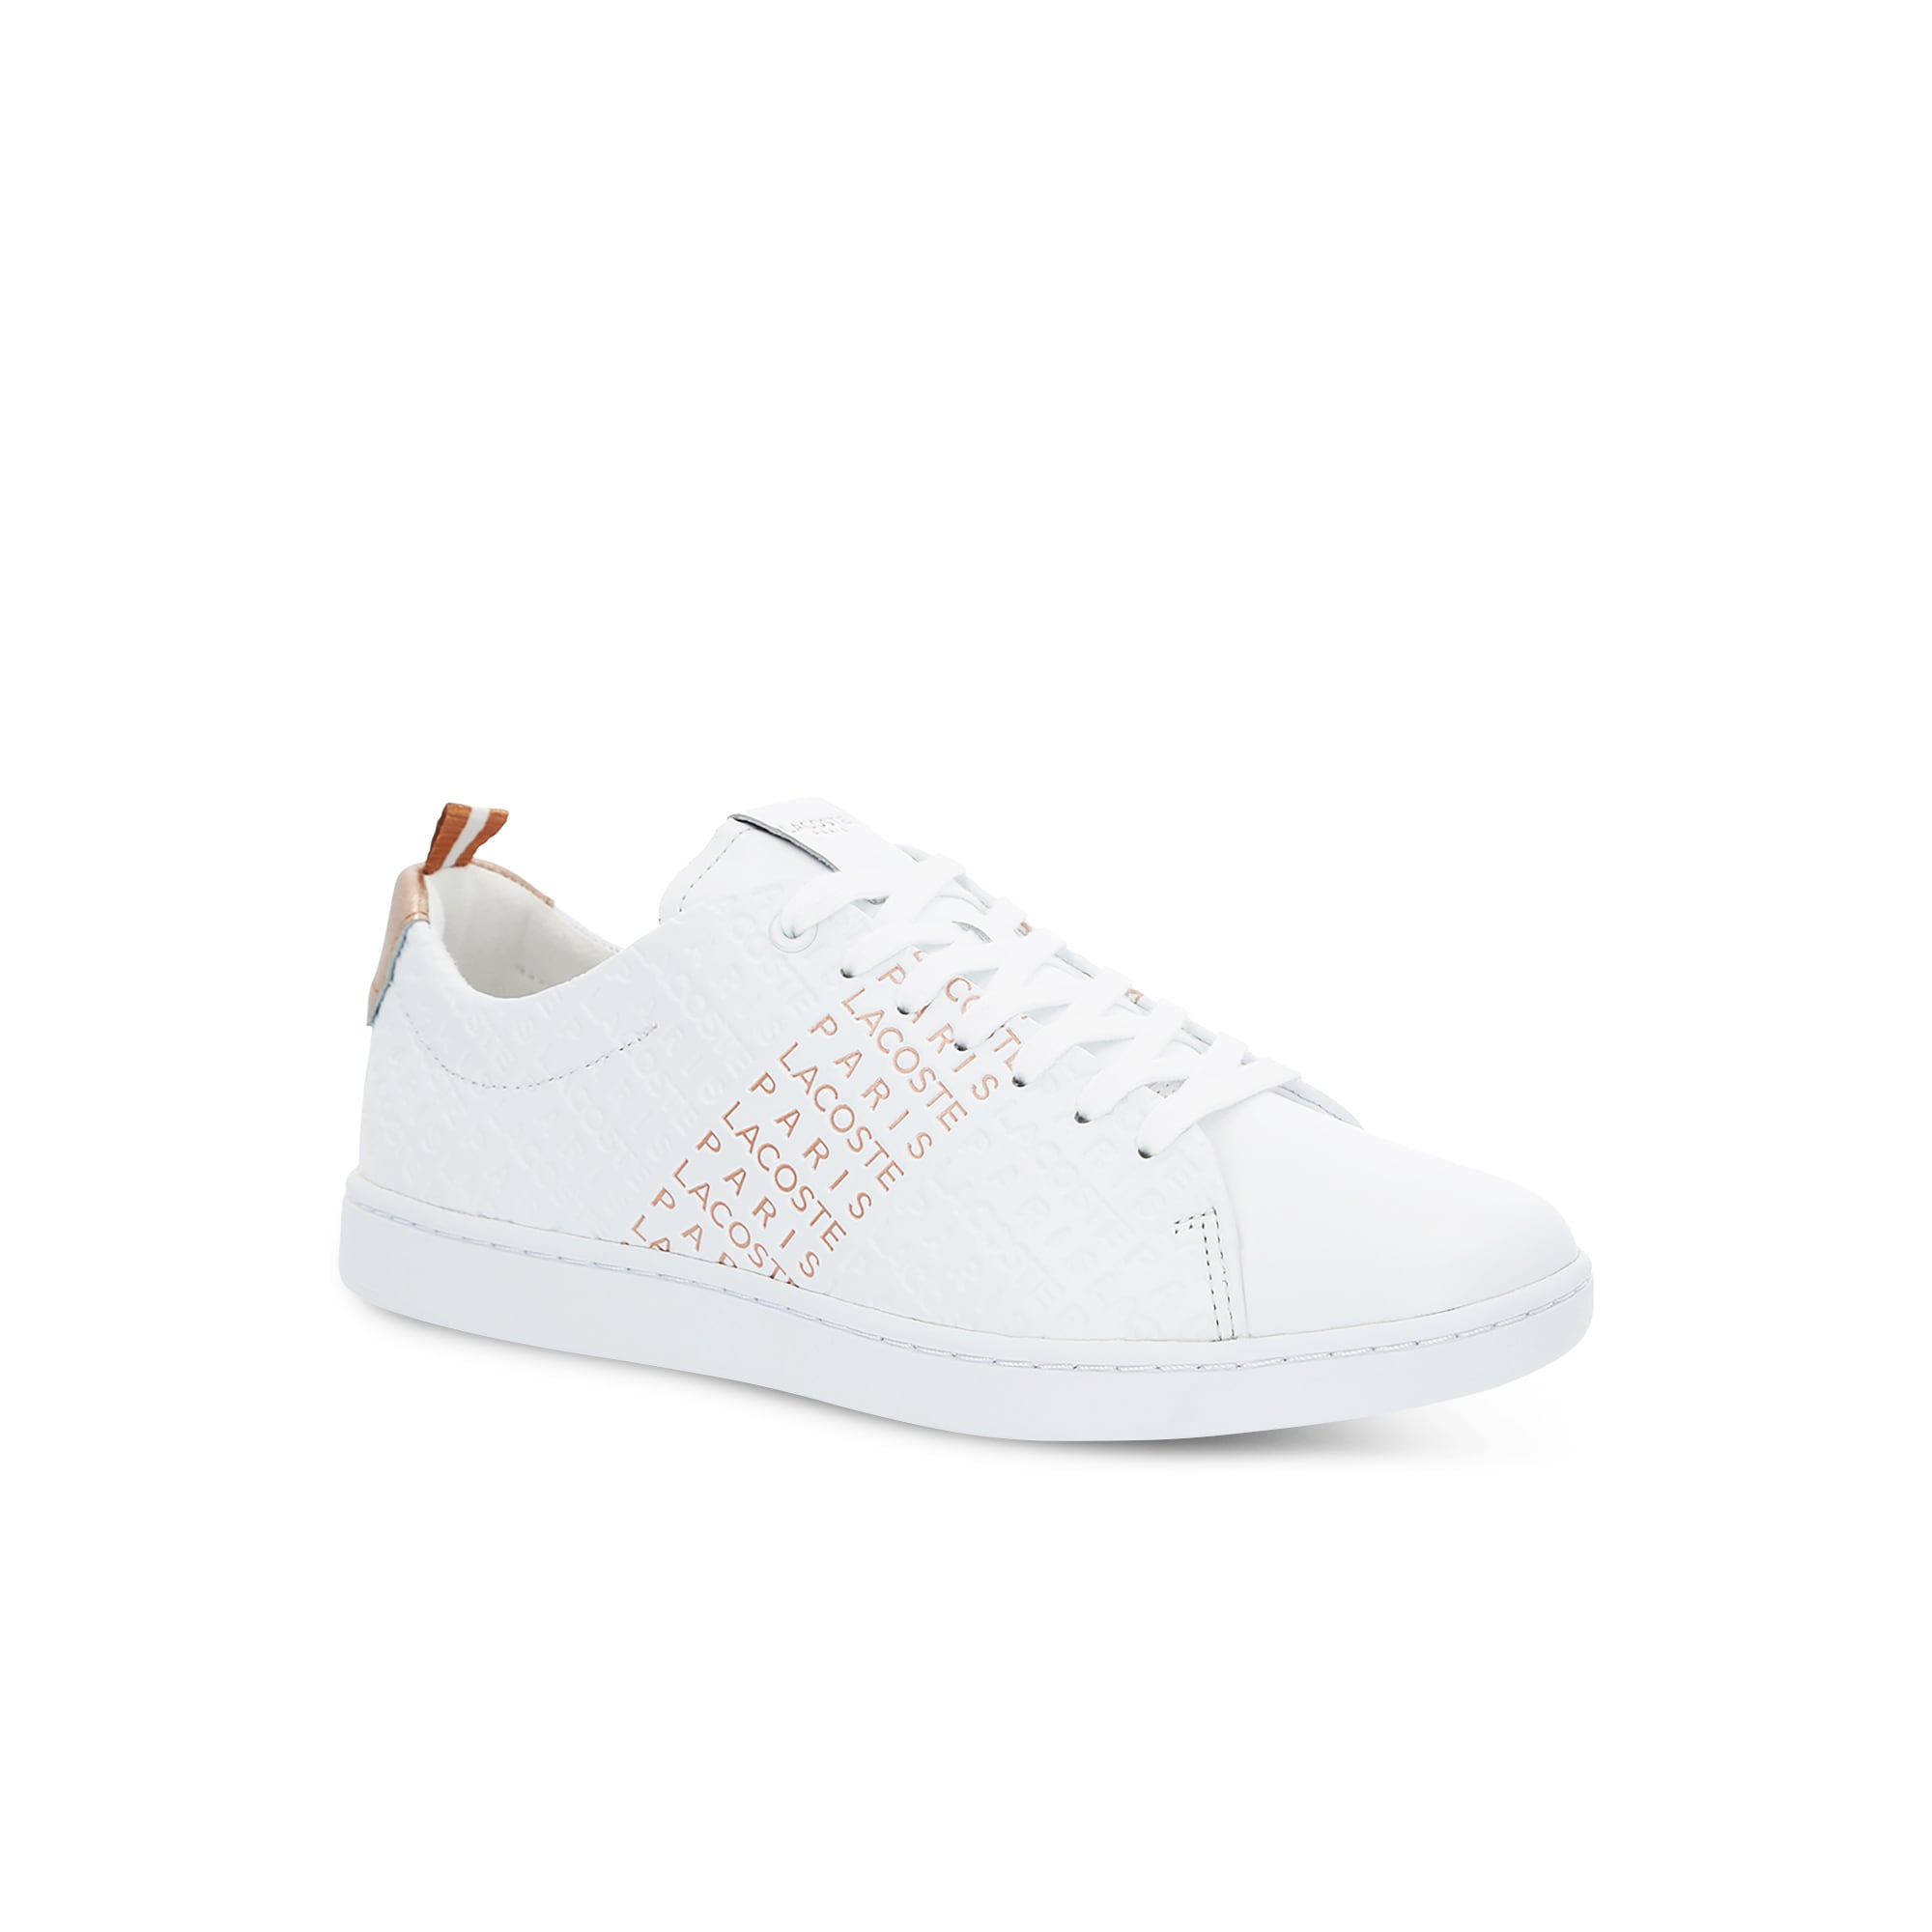 9b67851d77 Women's Carnaby Evo Embossed Leather Trainers